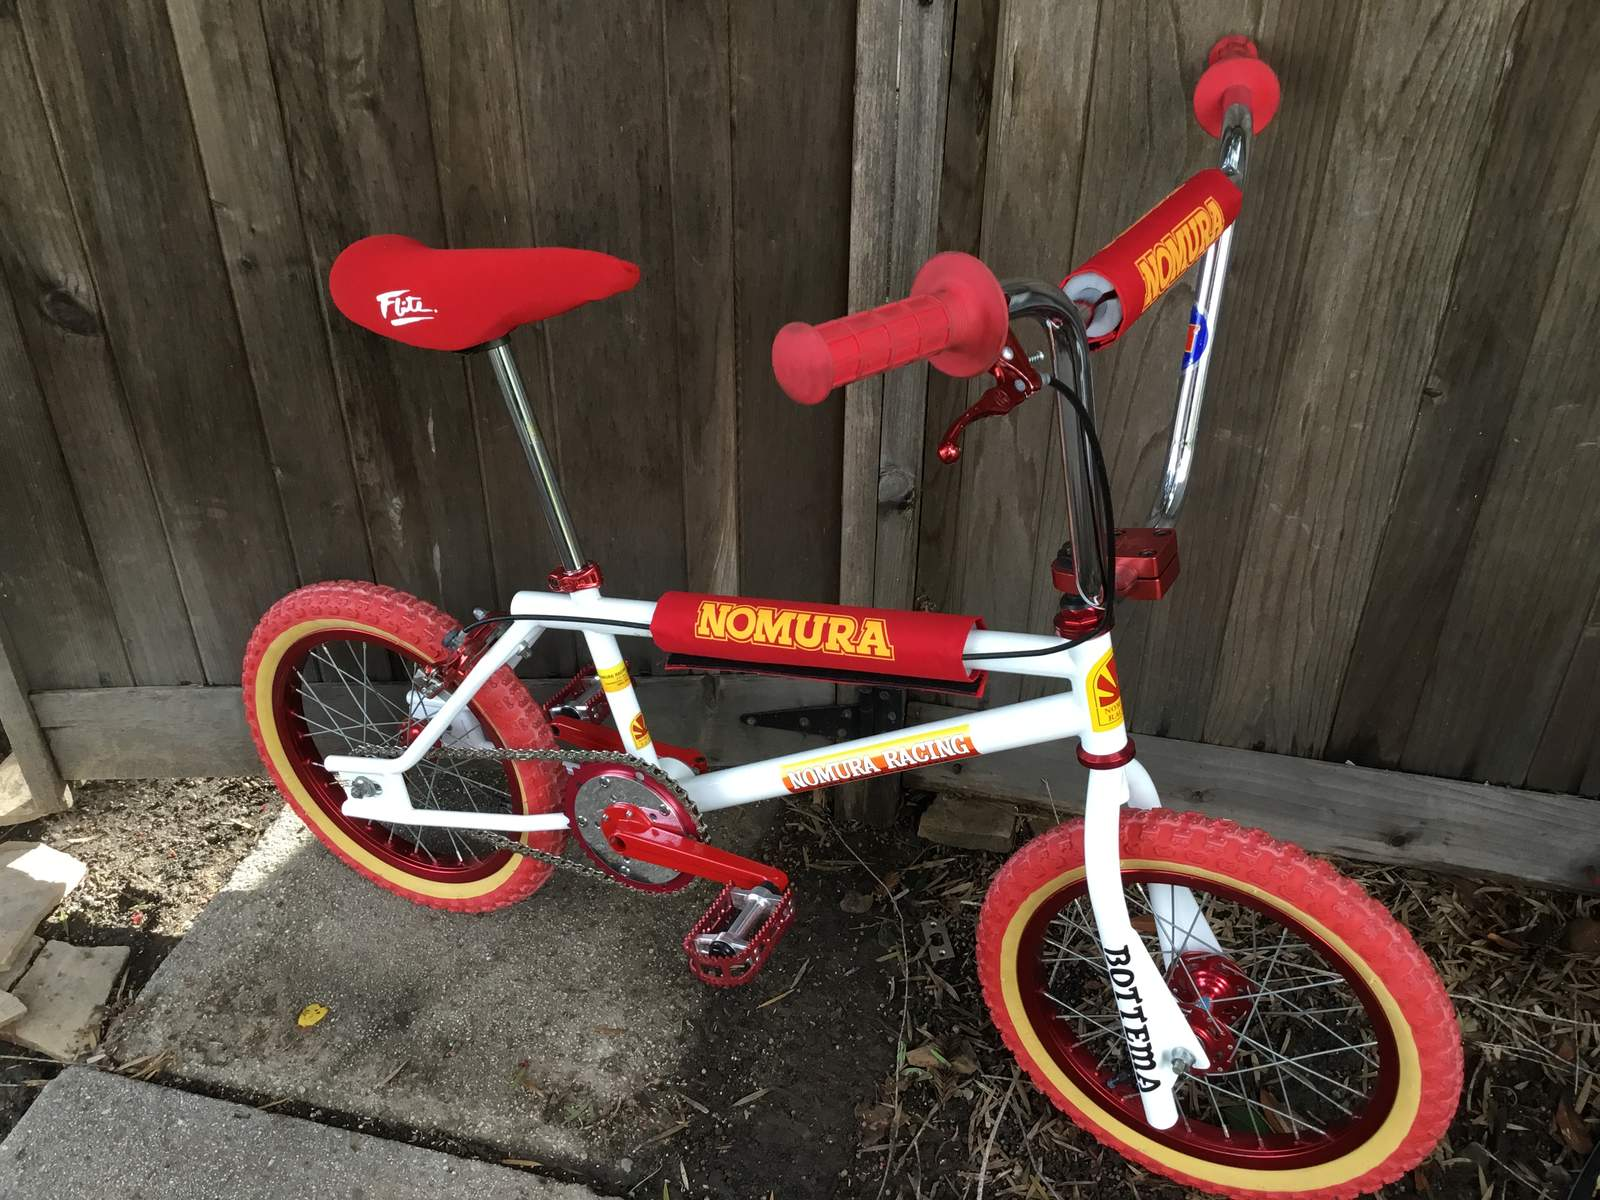 http://uploads.bmxmuseum.com/user-images/58189/18089d44-e1a8-47b9-80db-c7aacd78fb505c7c7bb616.jpeg